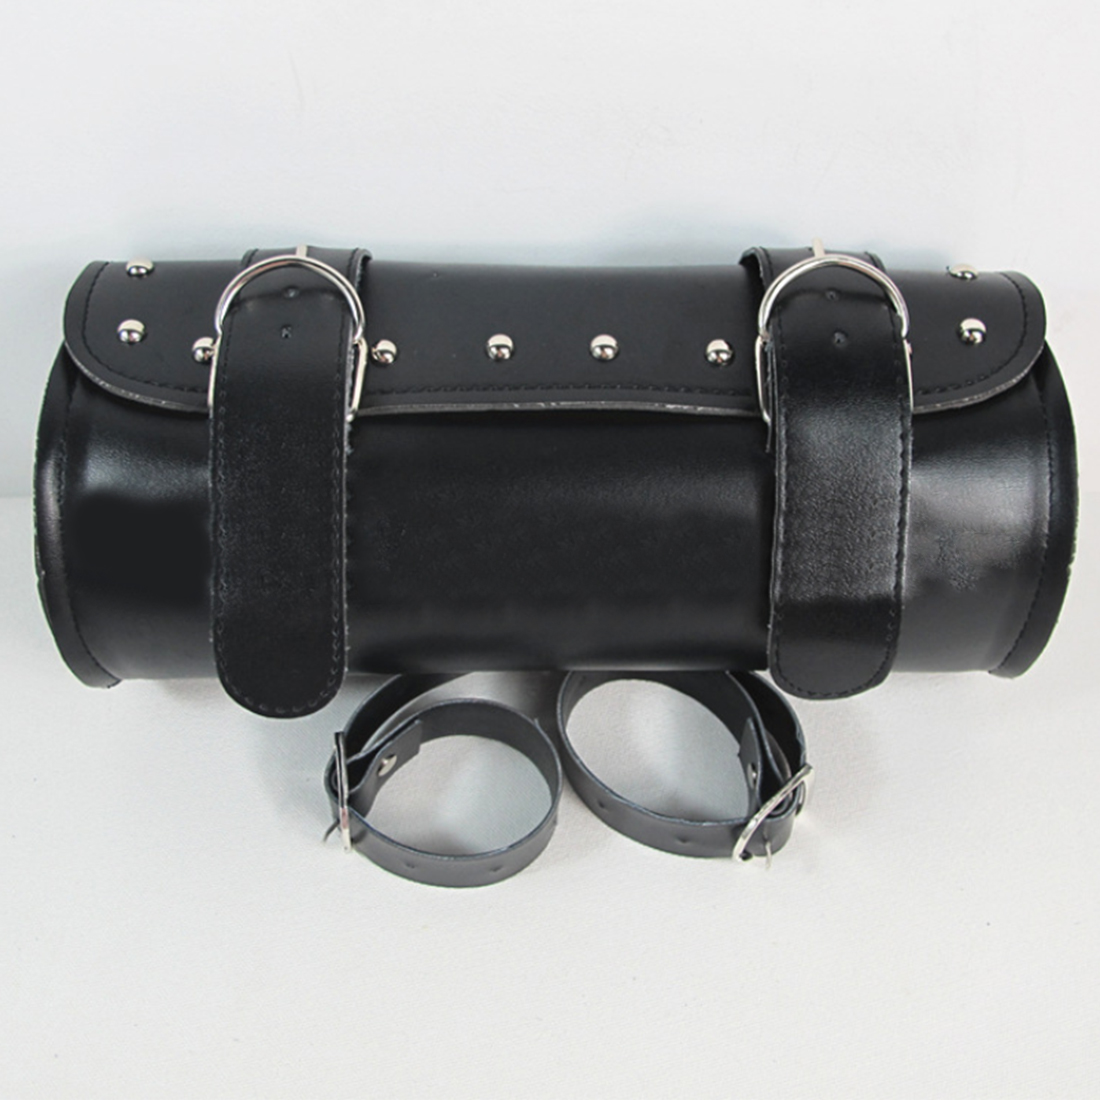 Dewtreetali Fashion Motorcycle PU Leather Saddlebag Saddle Tool Pouch Side Bag Harley Cruiser Storage Pouch Moto Styling